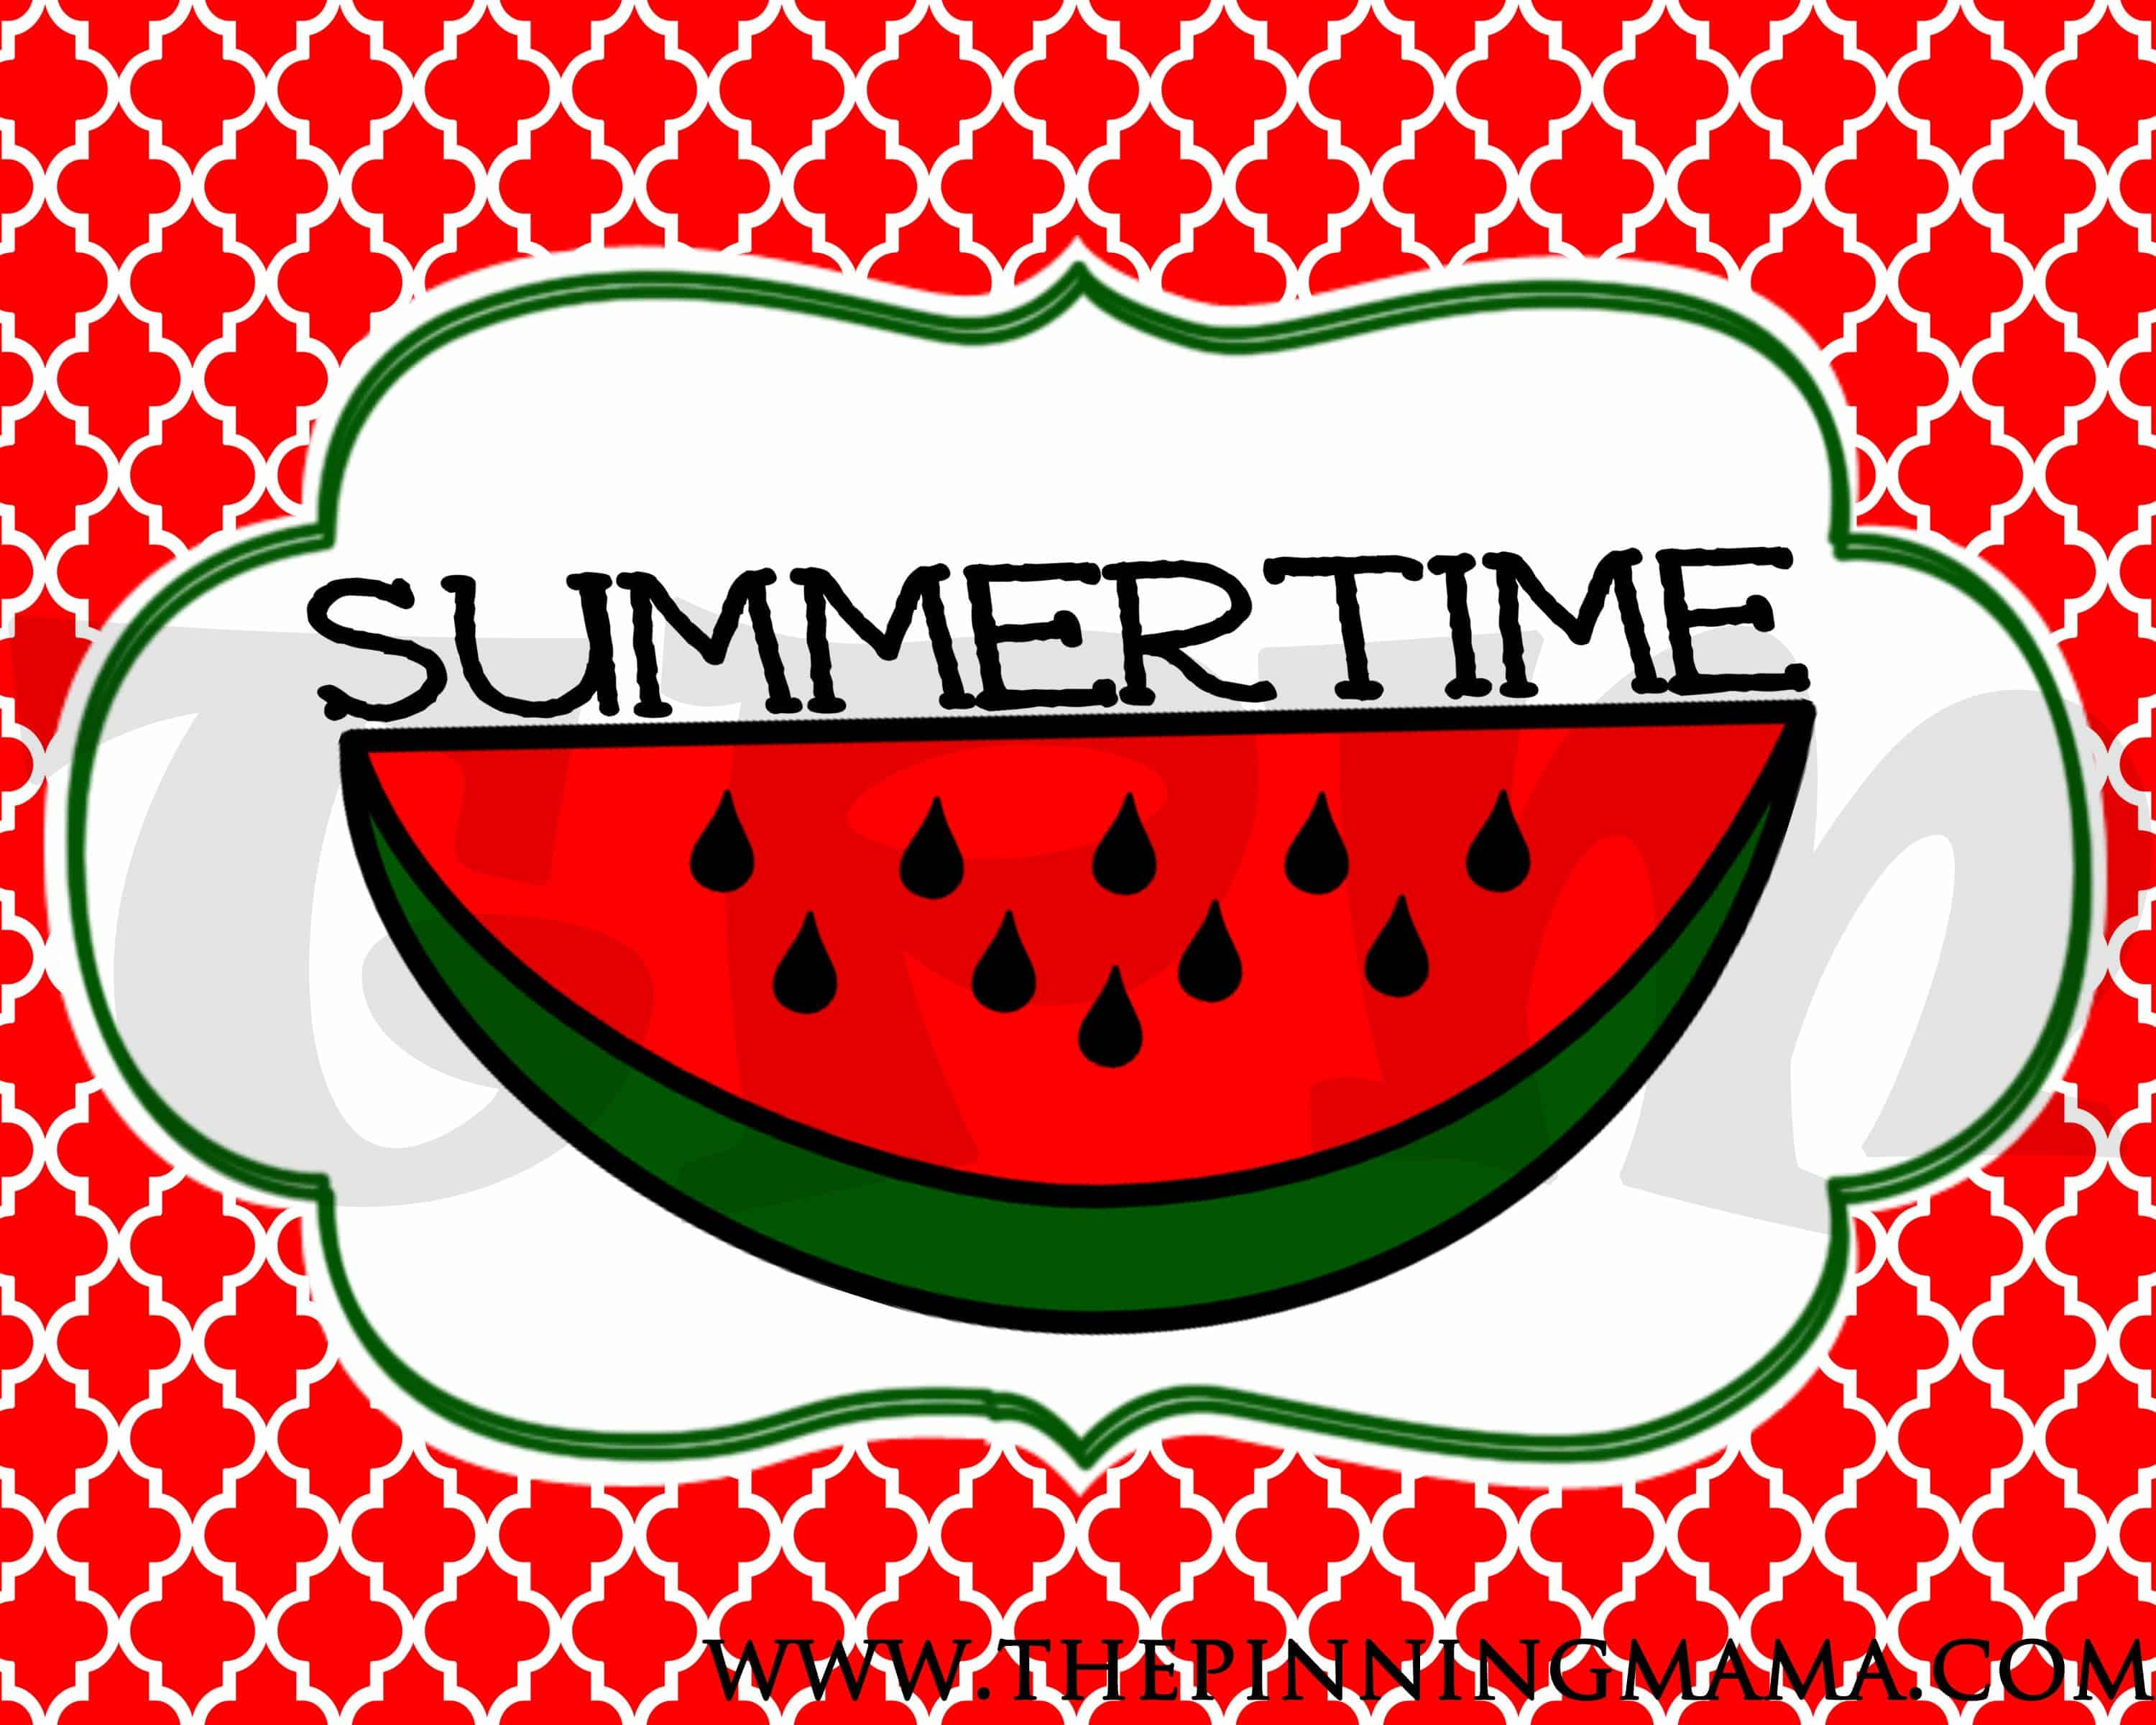 Free Summer Printable - Summertime by www.thepinningmama.com